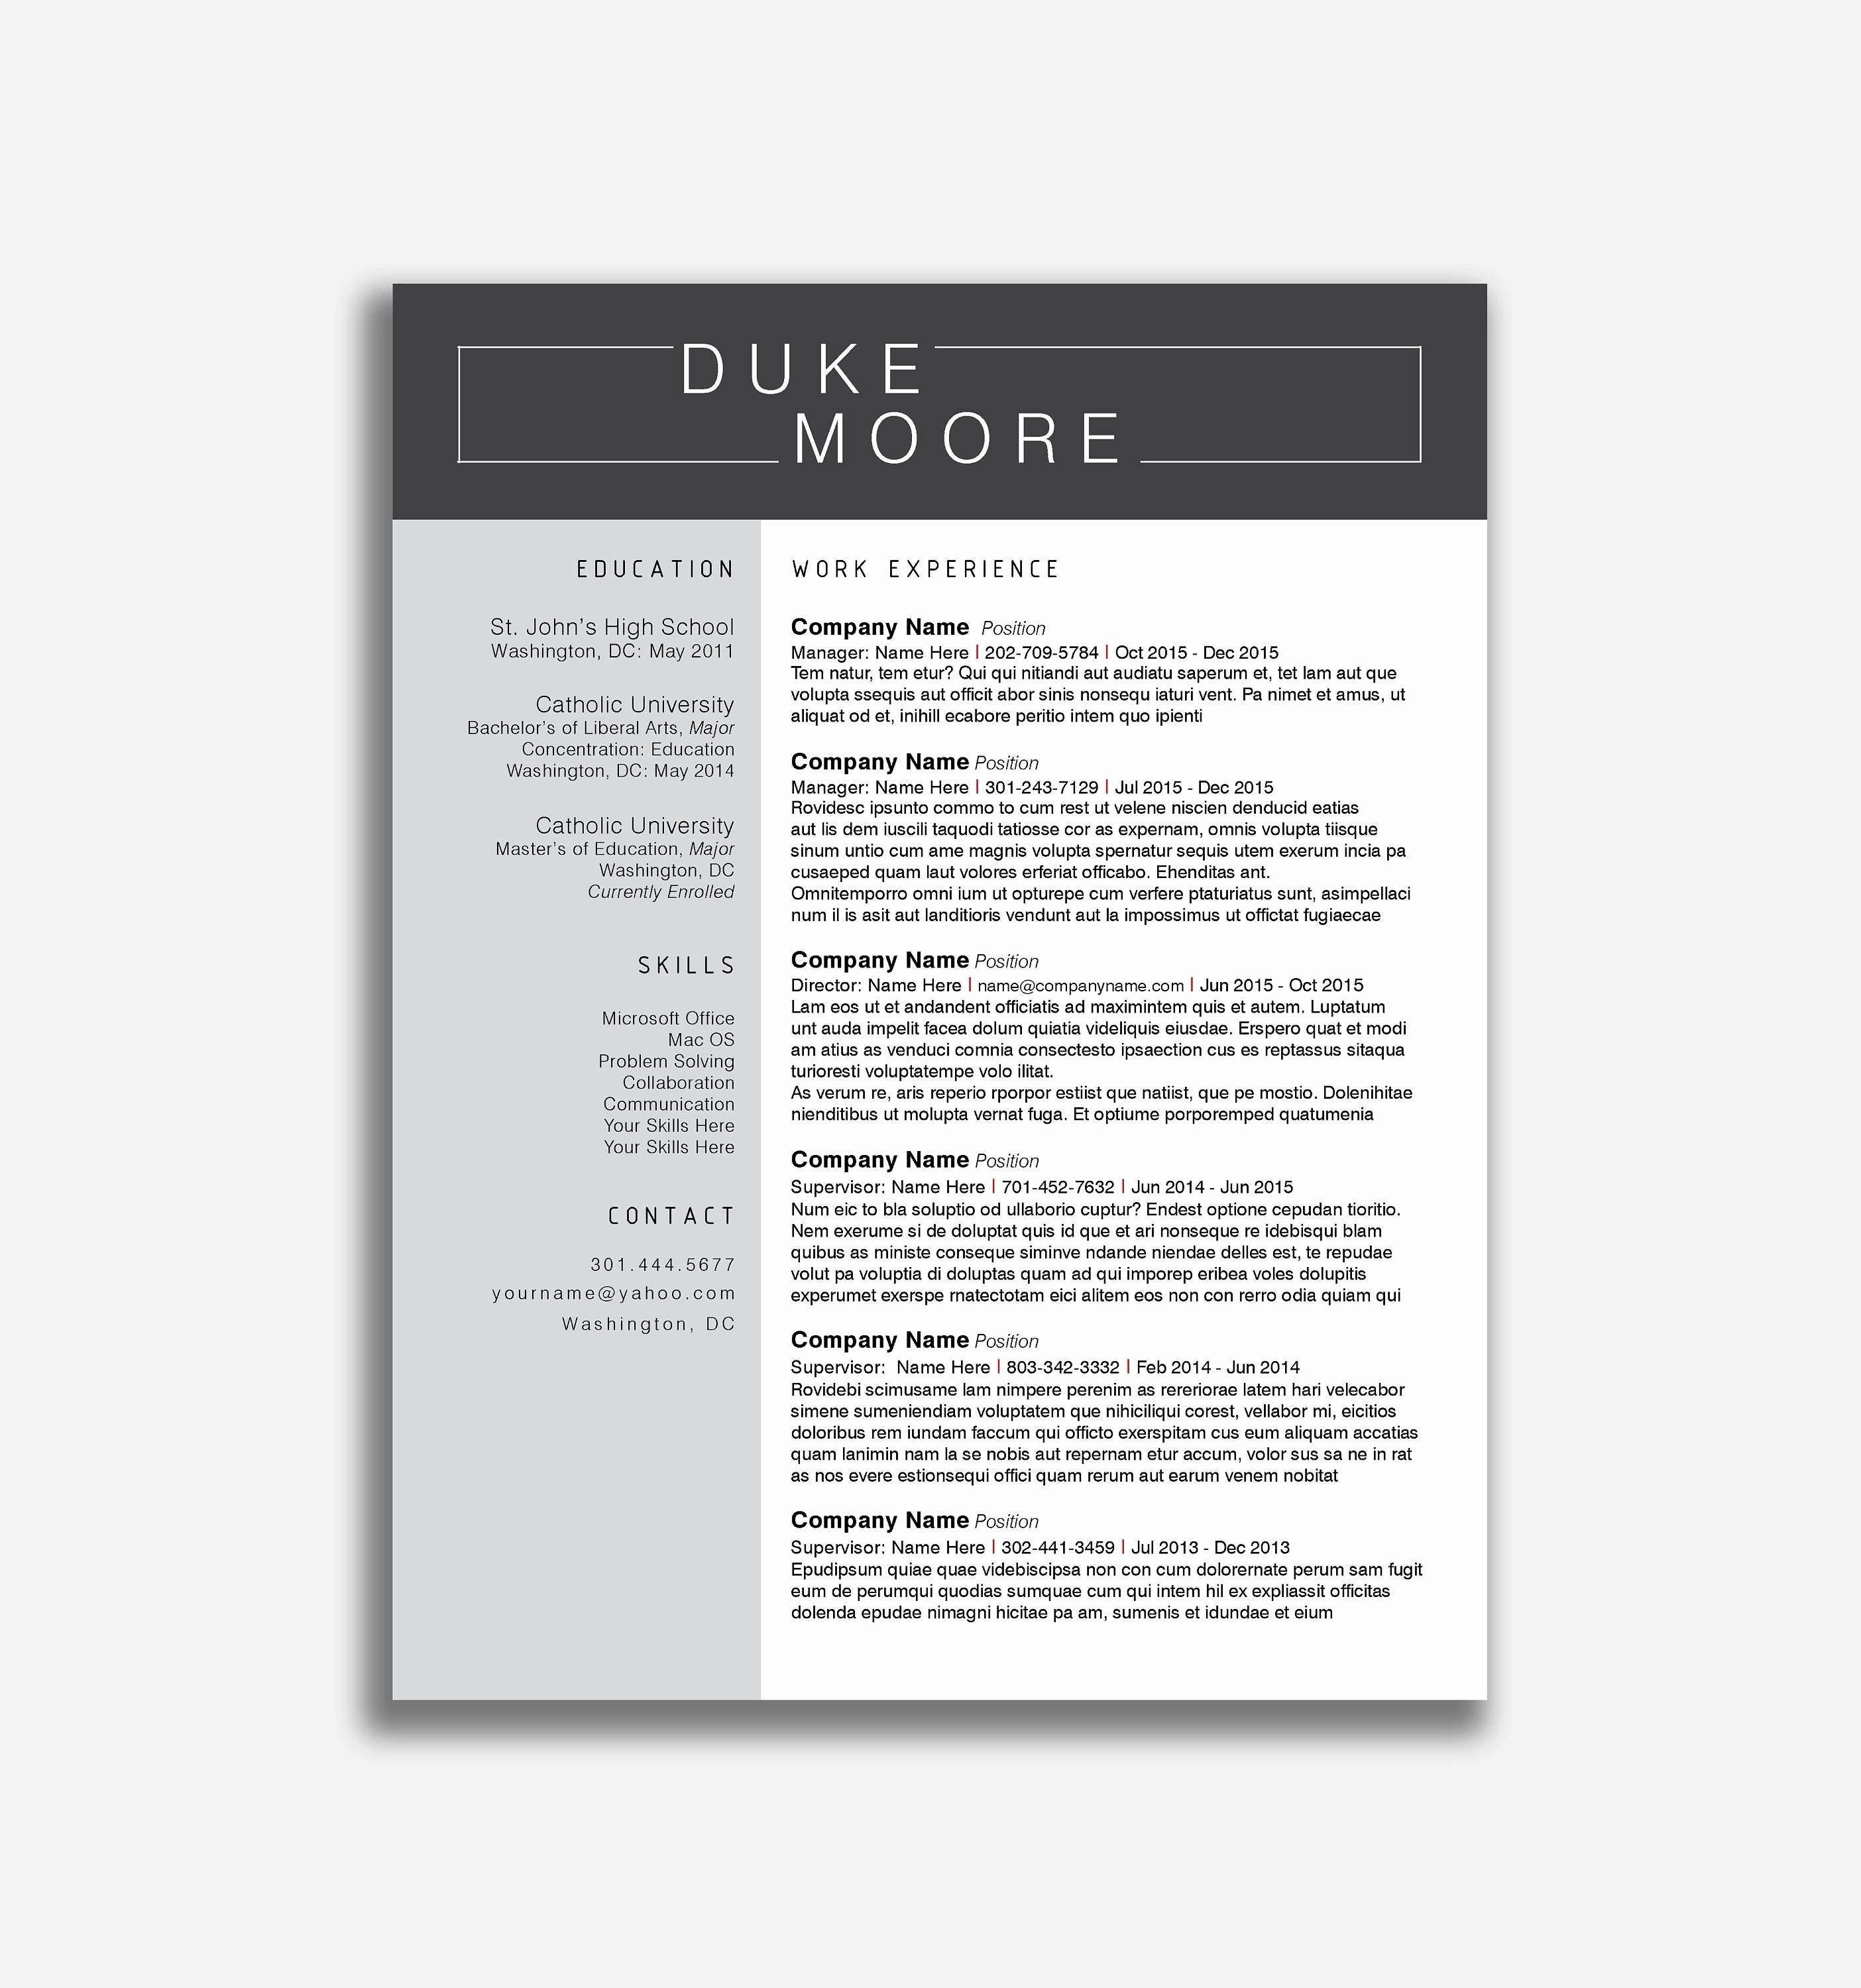 Recent College Graduate Resume - College Grad Resume Lovely 9 Exhilarate Sample Resumes for Recent